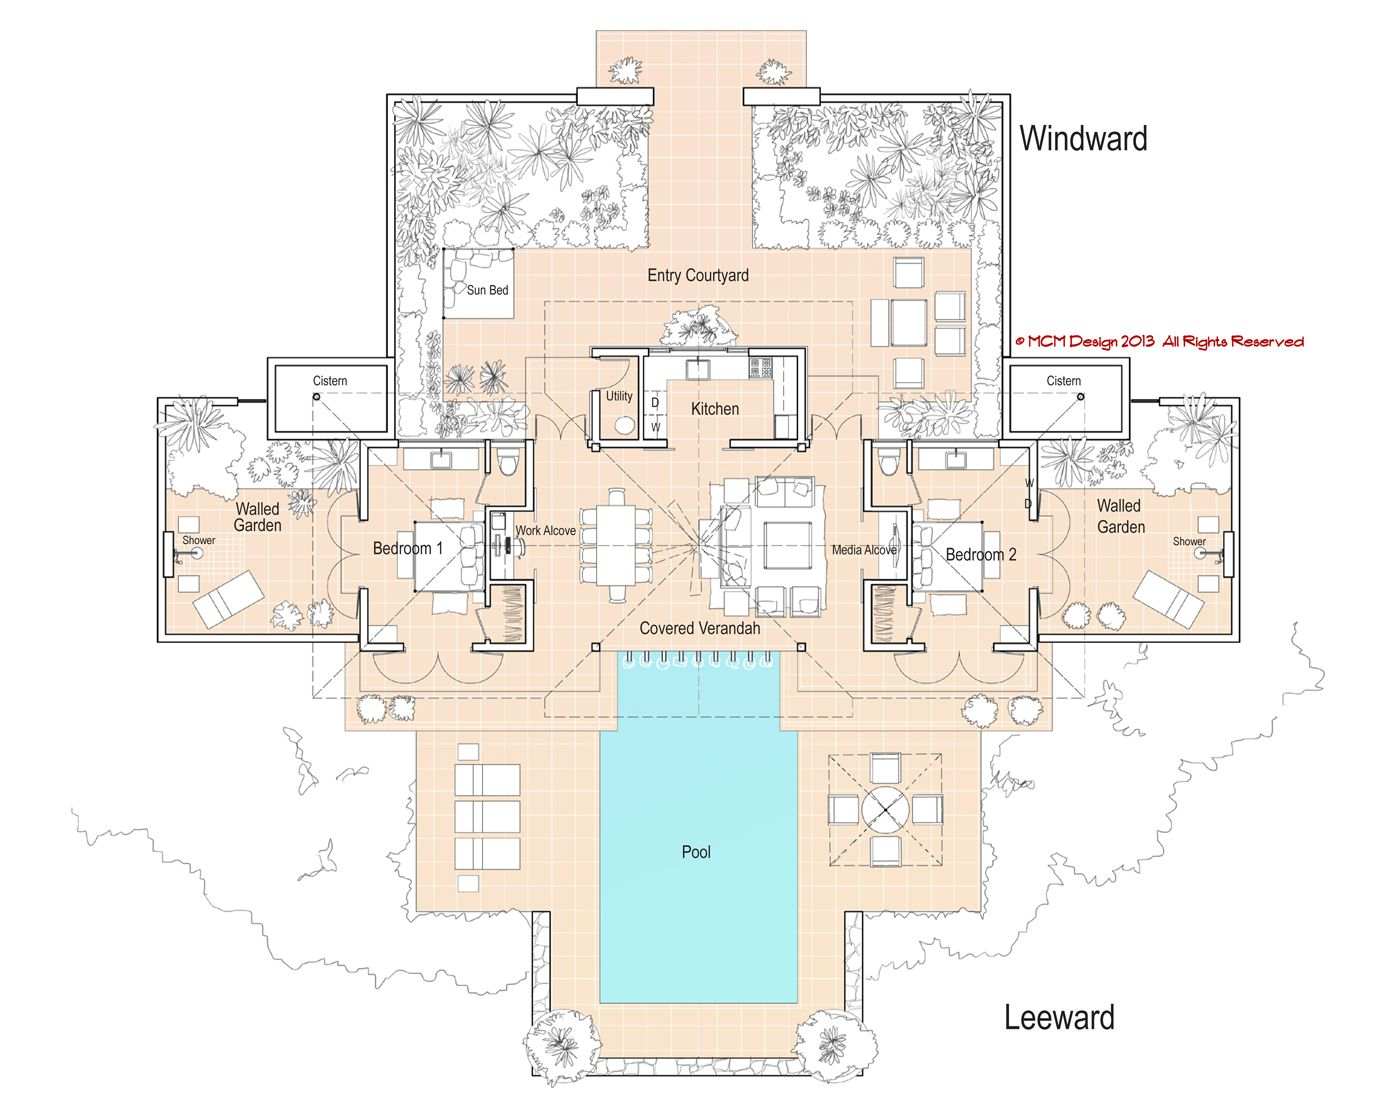 Amusing island house plans gallery ideas house design for Island house plans